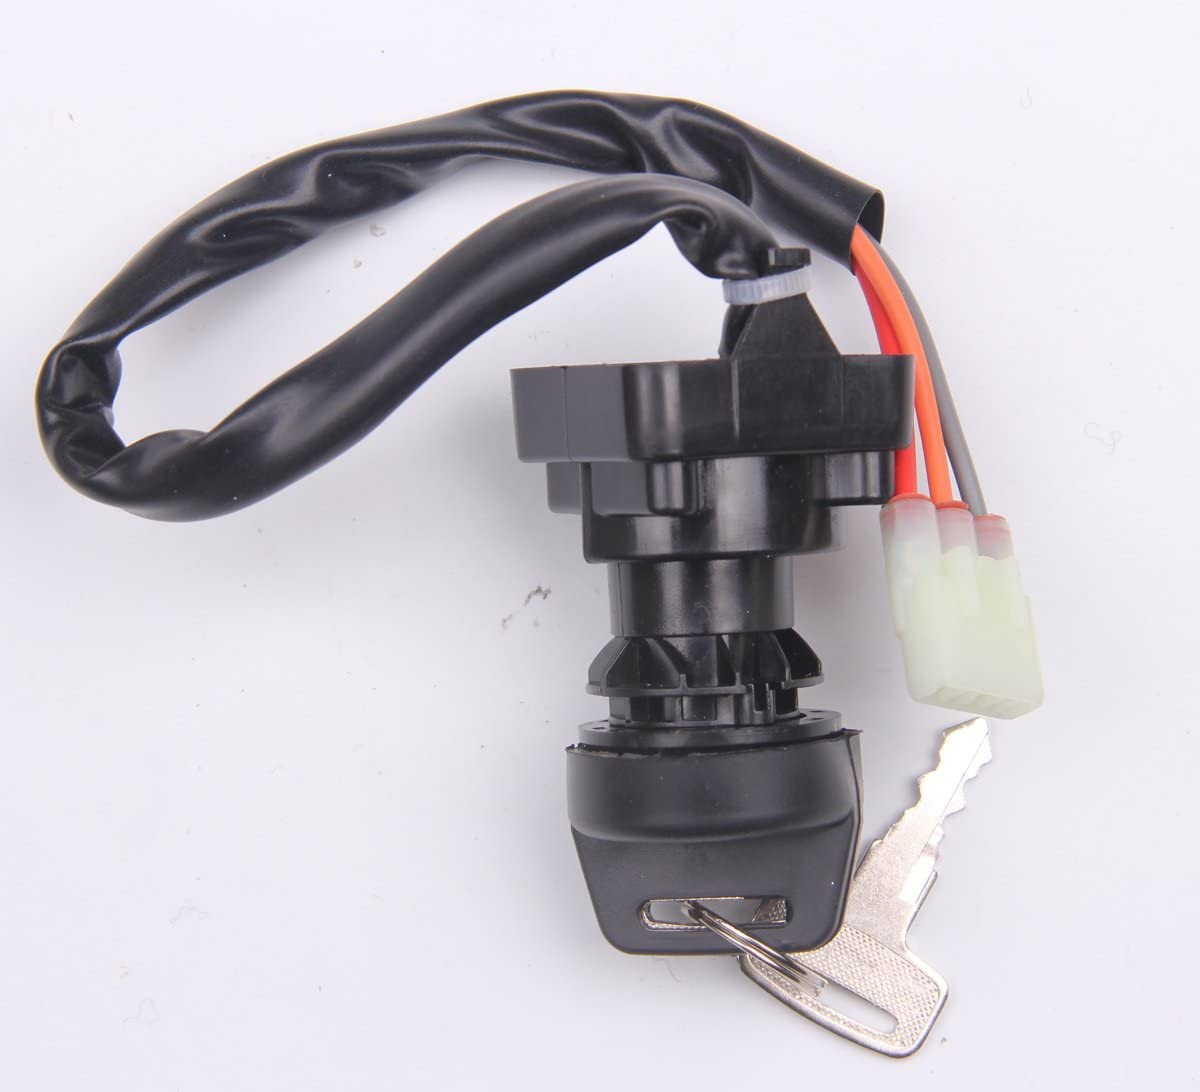 IGNITION KEY SWITCH FOR ARCTIC CAT 500 4X4 AUTOMATIC MANUAL 2009